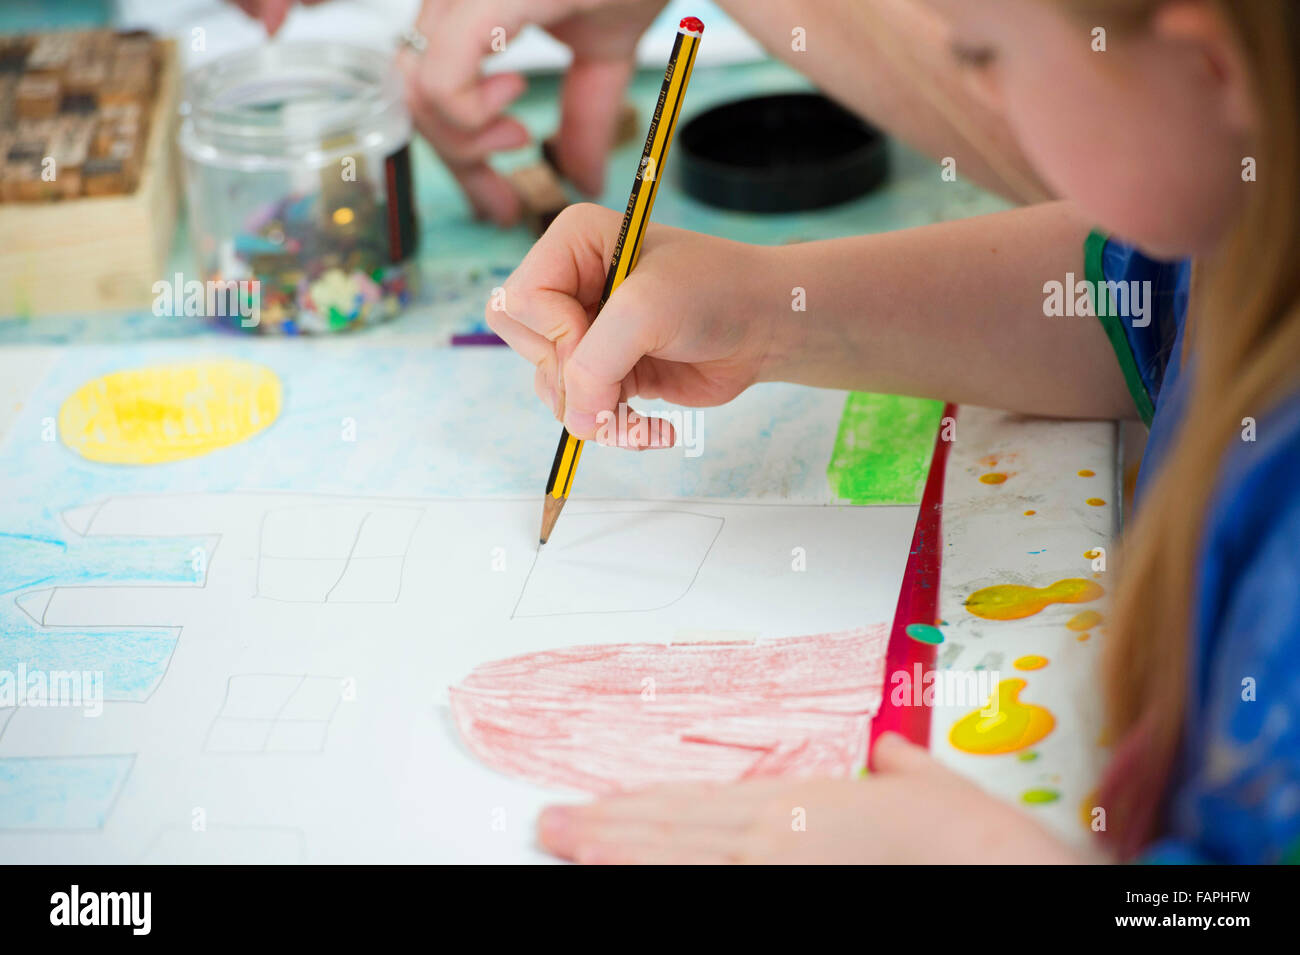 Children Learning Creative Skills While Doing Art And Craft Stock